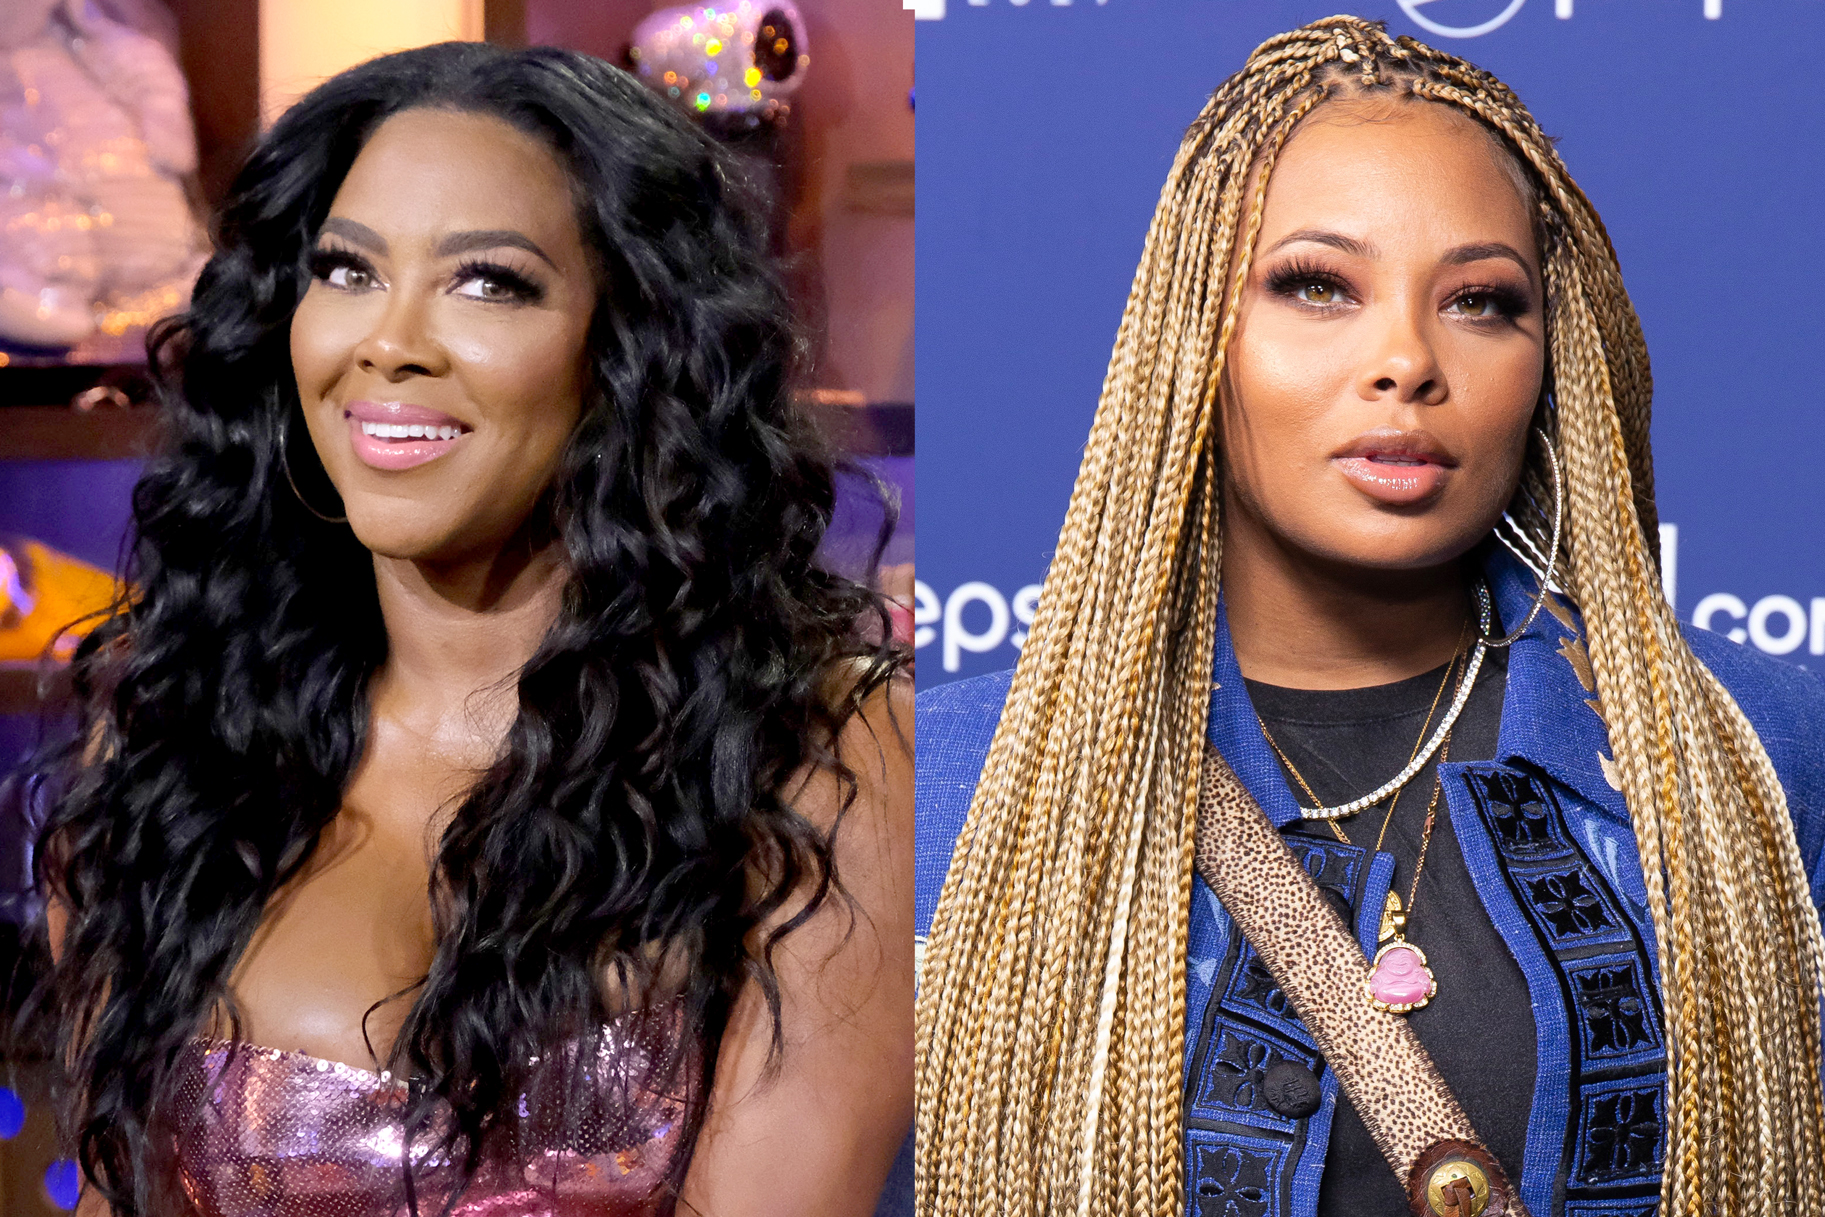 Eva Marcille Accepts Kenya Moore's 'Model Challenge' - See The Photos She Posted